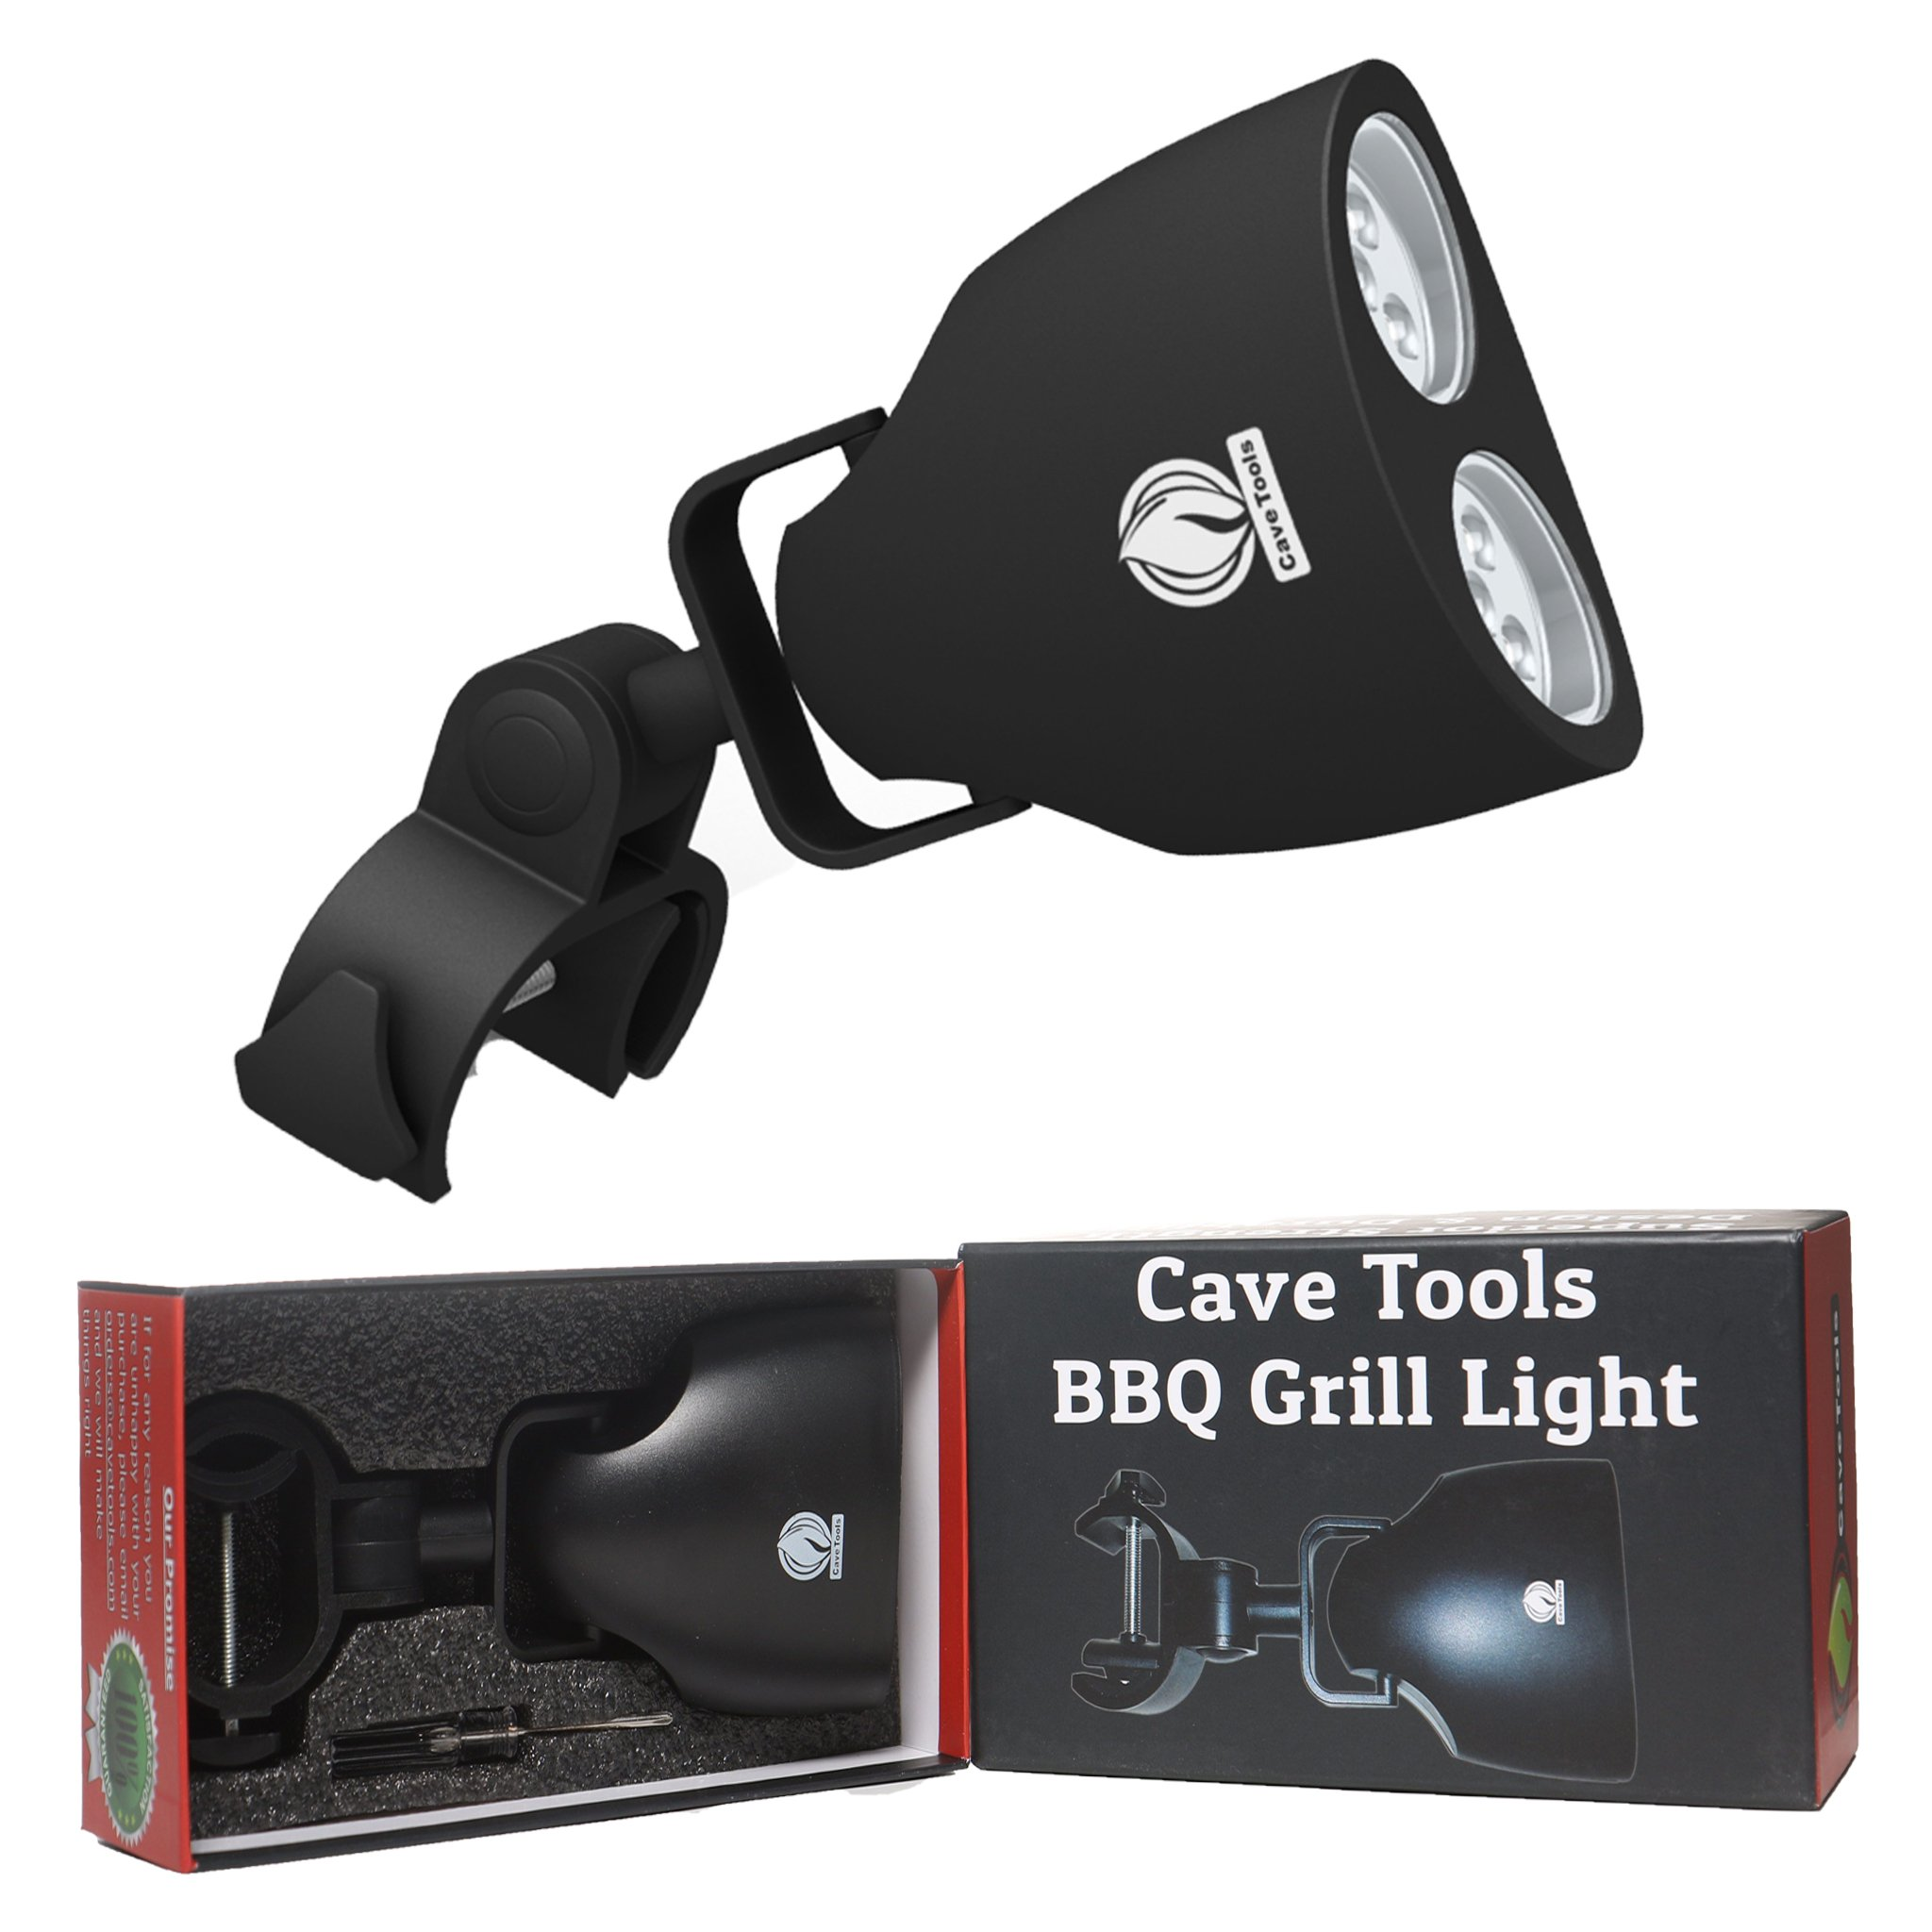 Cave Tools Barbecue Grill Light - Luxurious Gift Box - Upgraded Handle Mount Fits Round & Square Bars on Any BBQ Pit - 10 LED for Grilling at Night - Best Lighting Accessories by Cave Tools